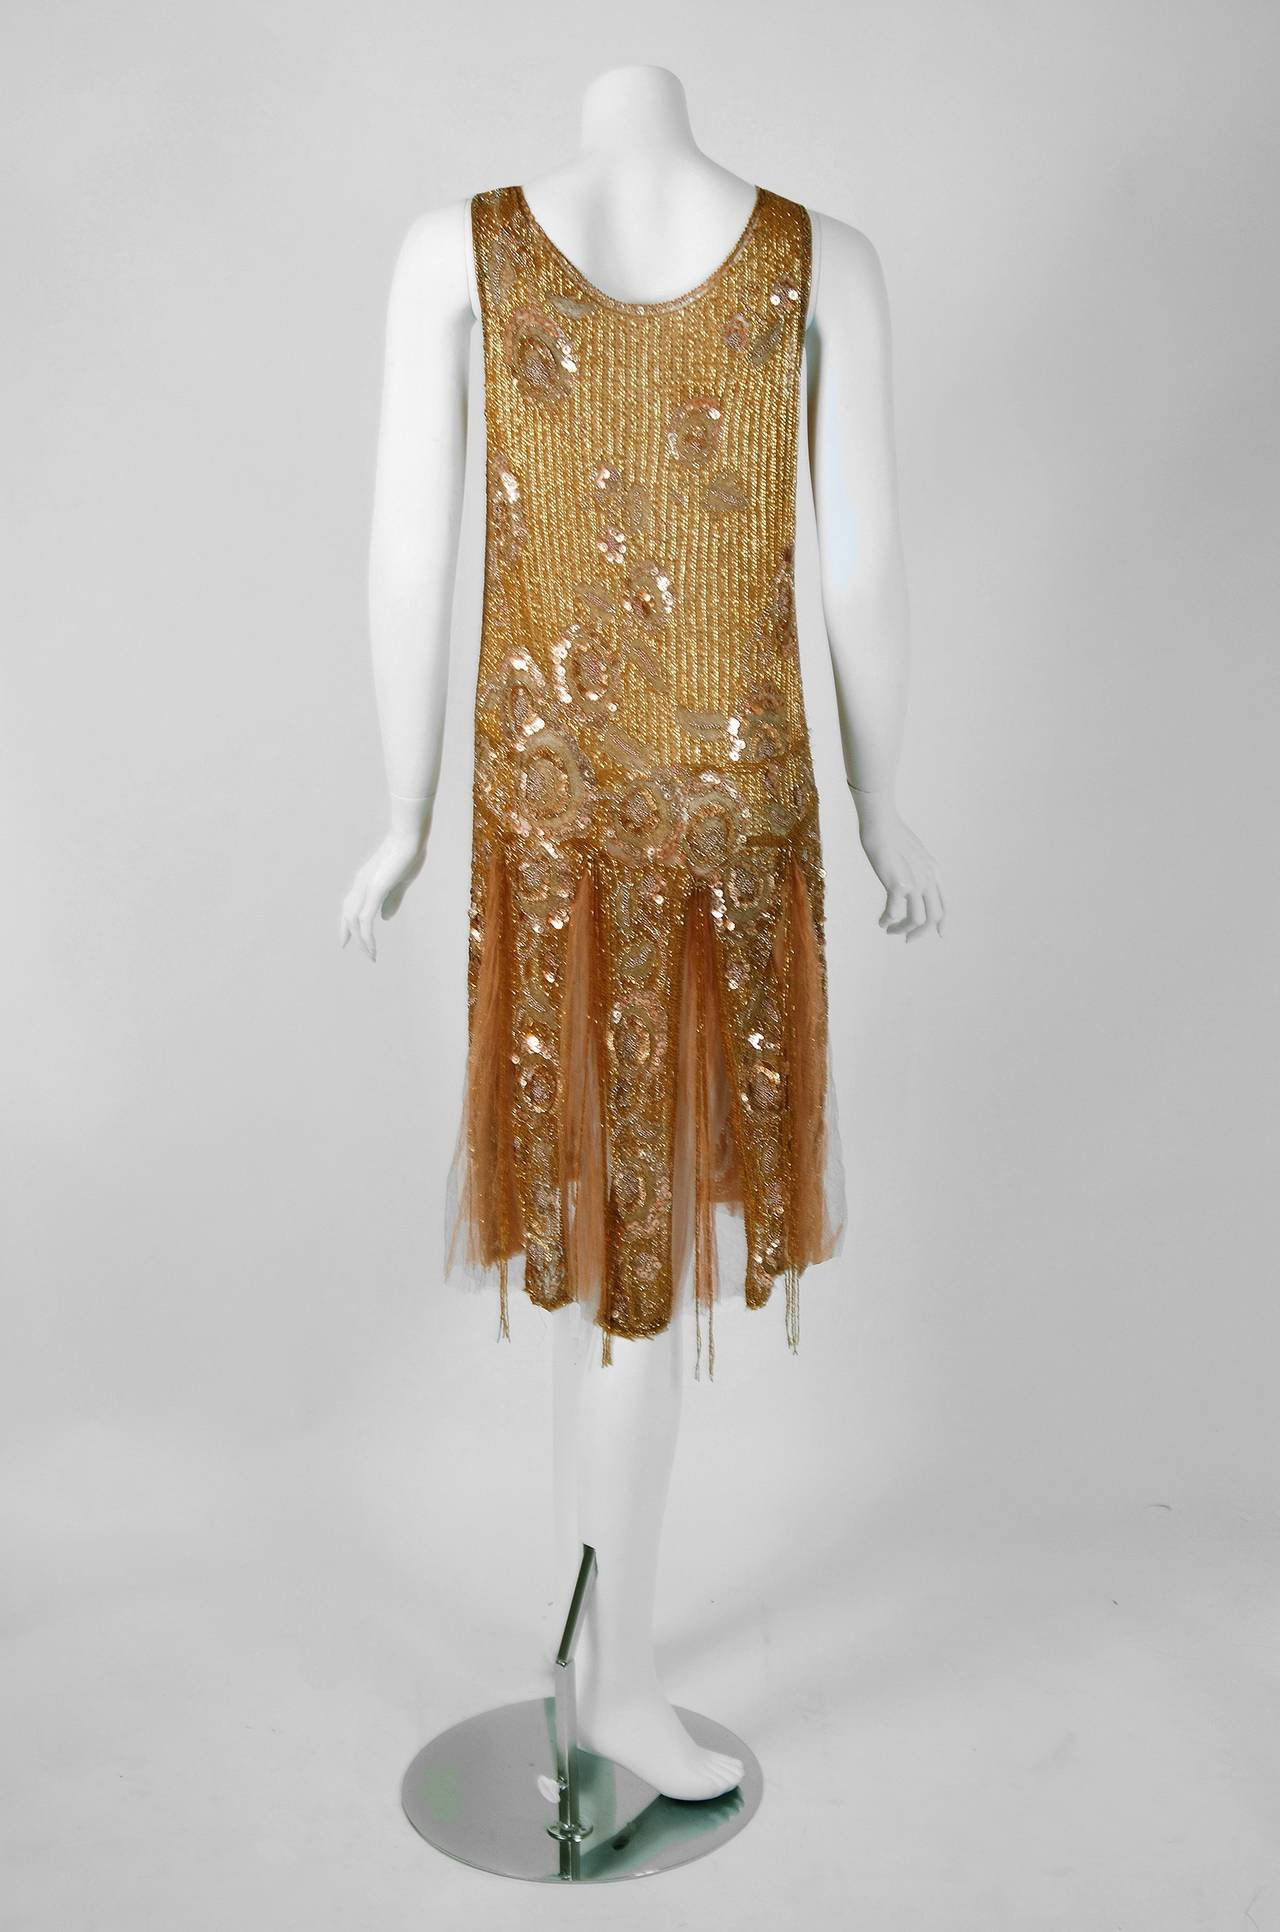 Women's 1920's French Metallic-Gold Beaded Sequin Deco Silk-Chiffon Flapper Dress & Coat For Sale